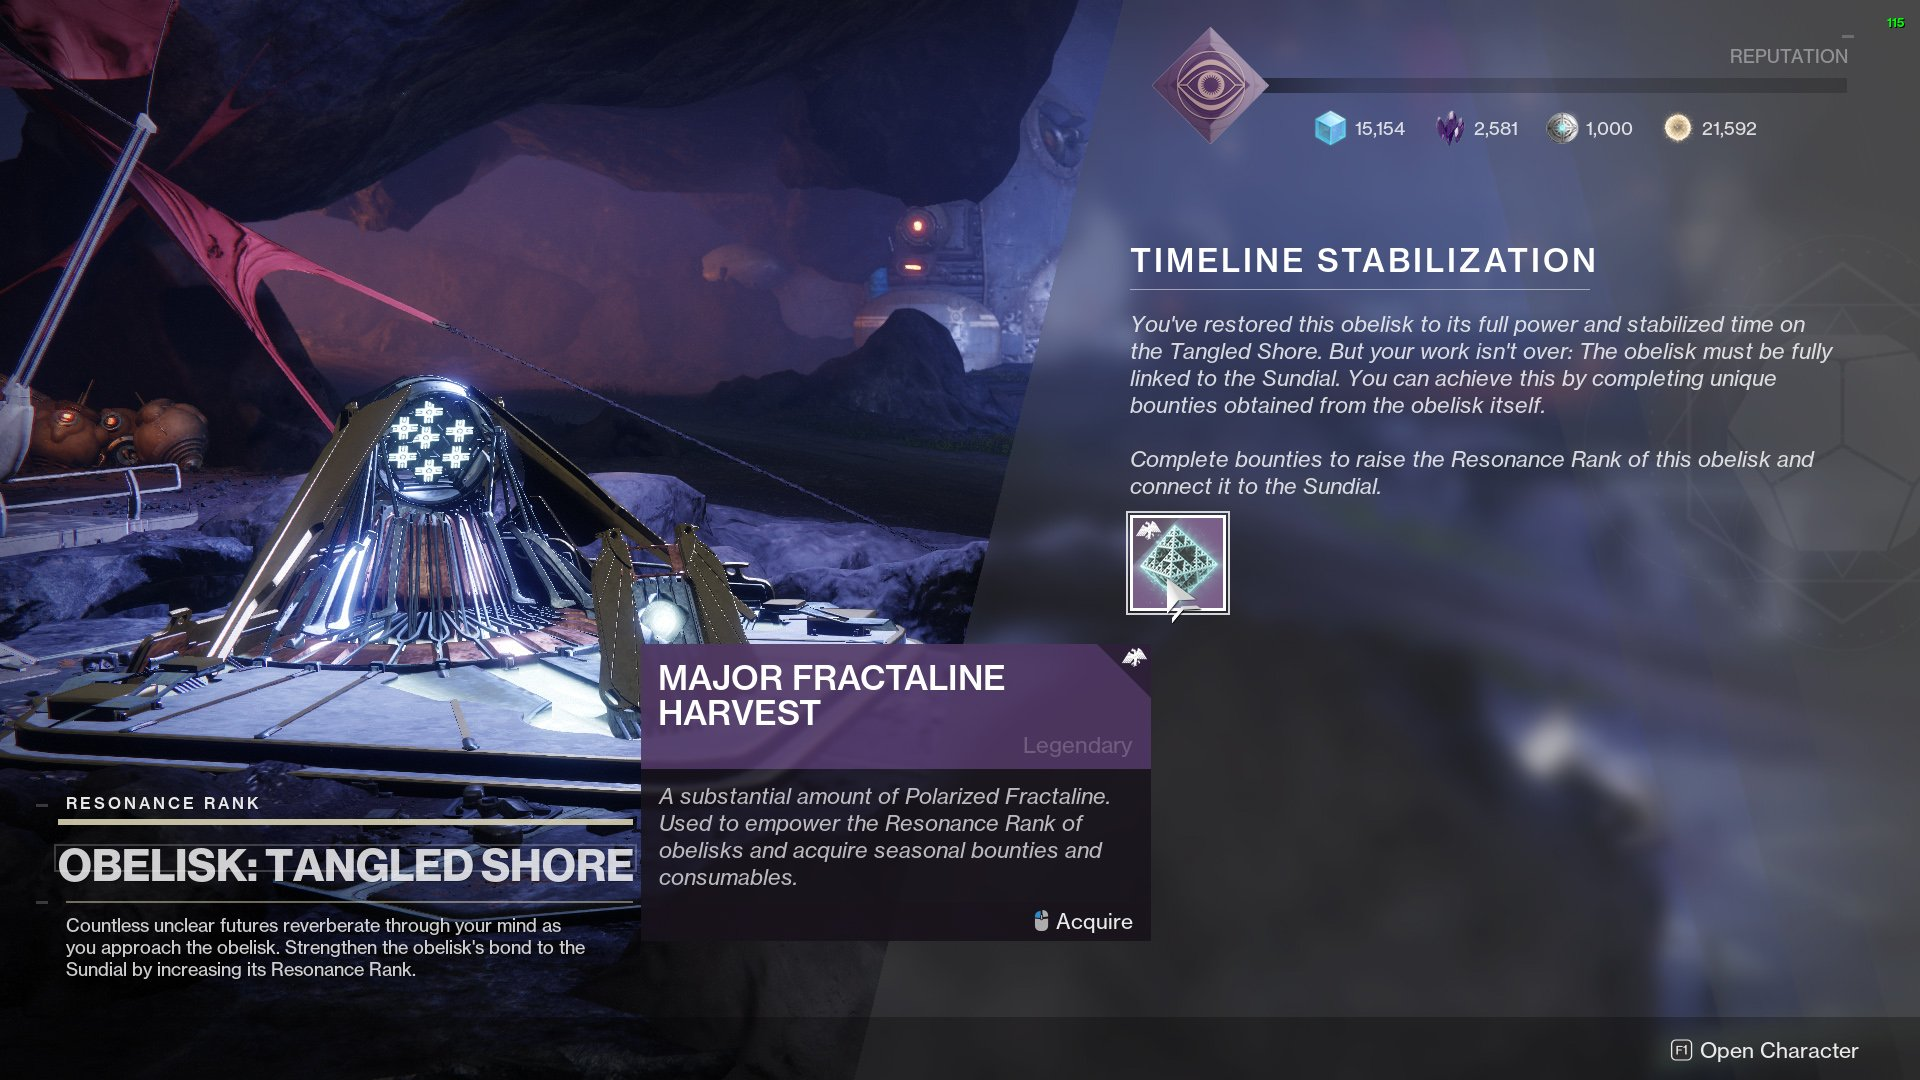 Destiny 2 Tangled Shore obelisk timeline stabilization